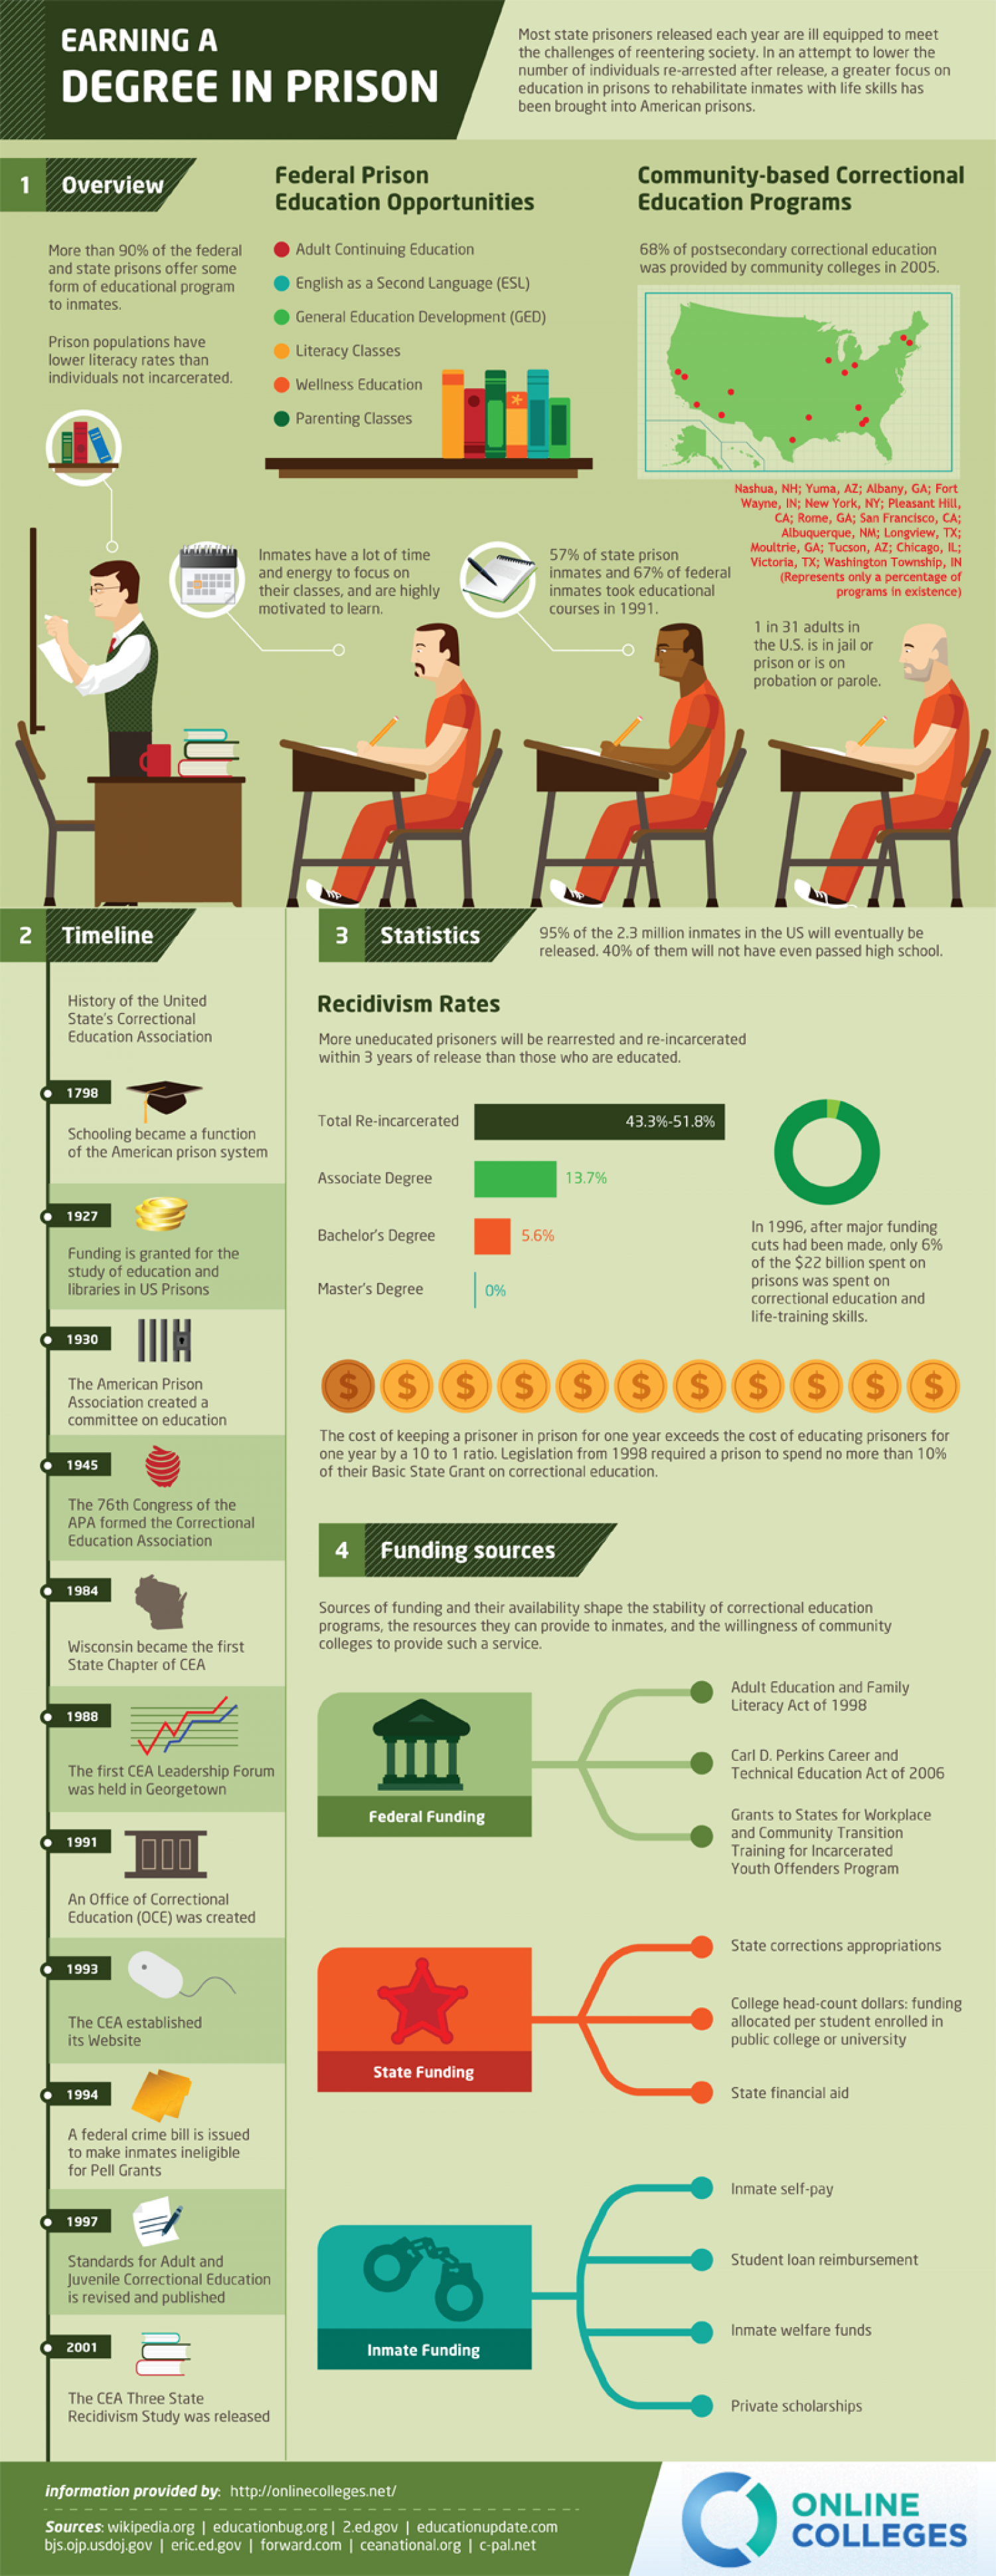 Earning a Degree in Prison Infographic